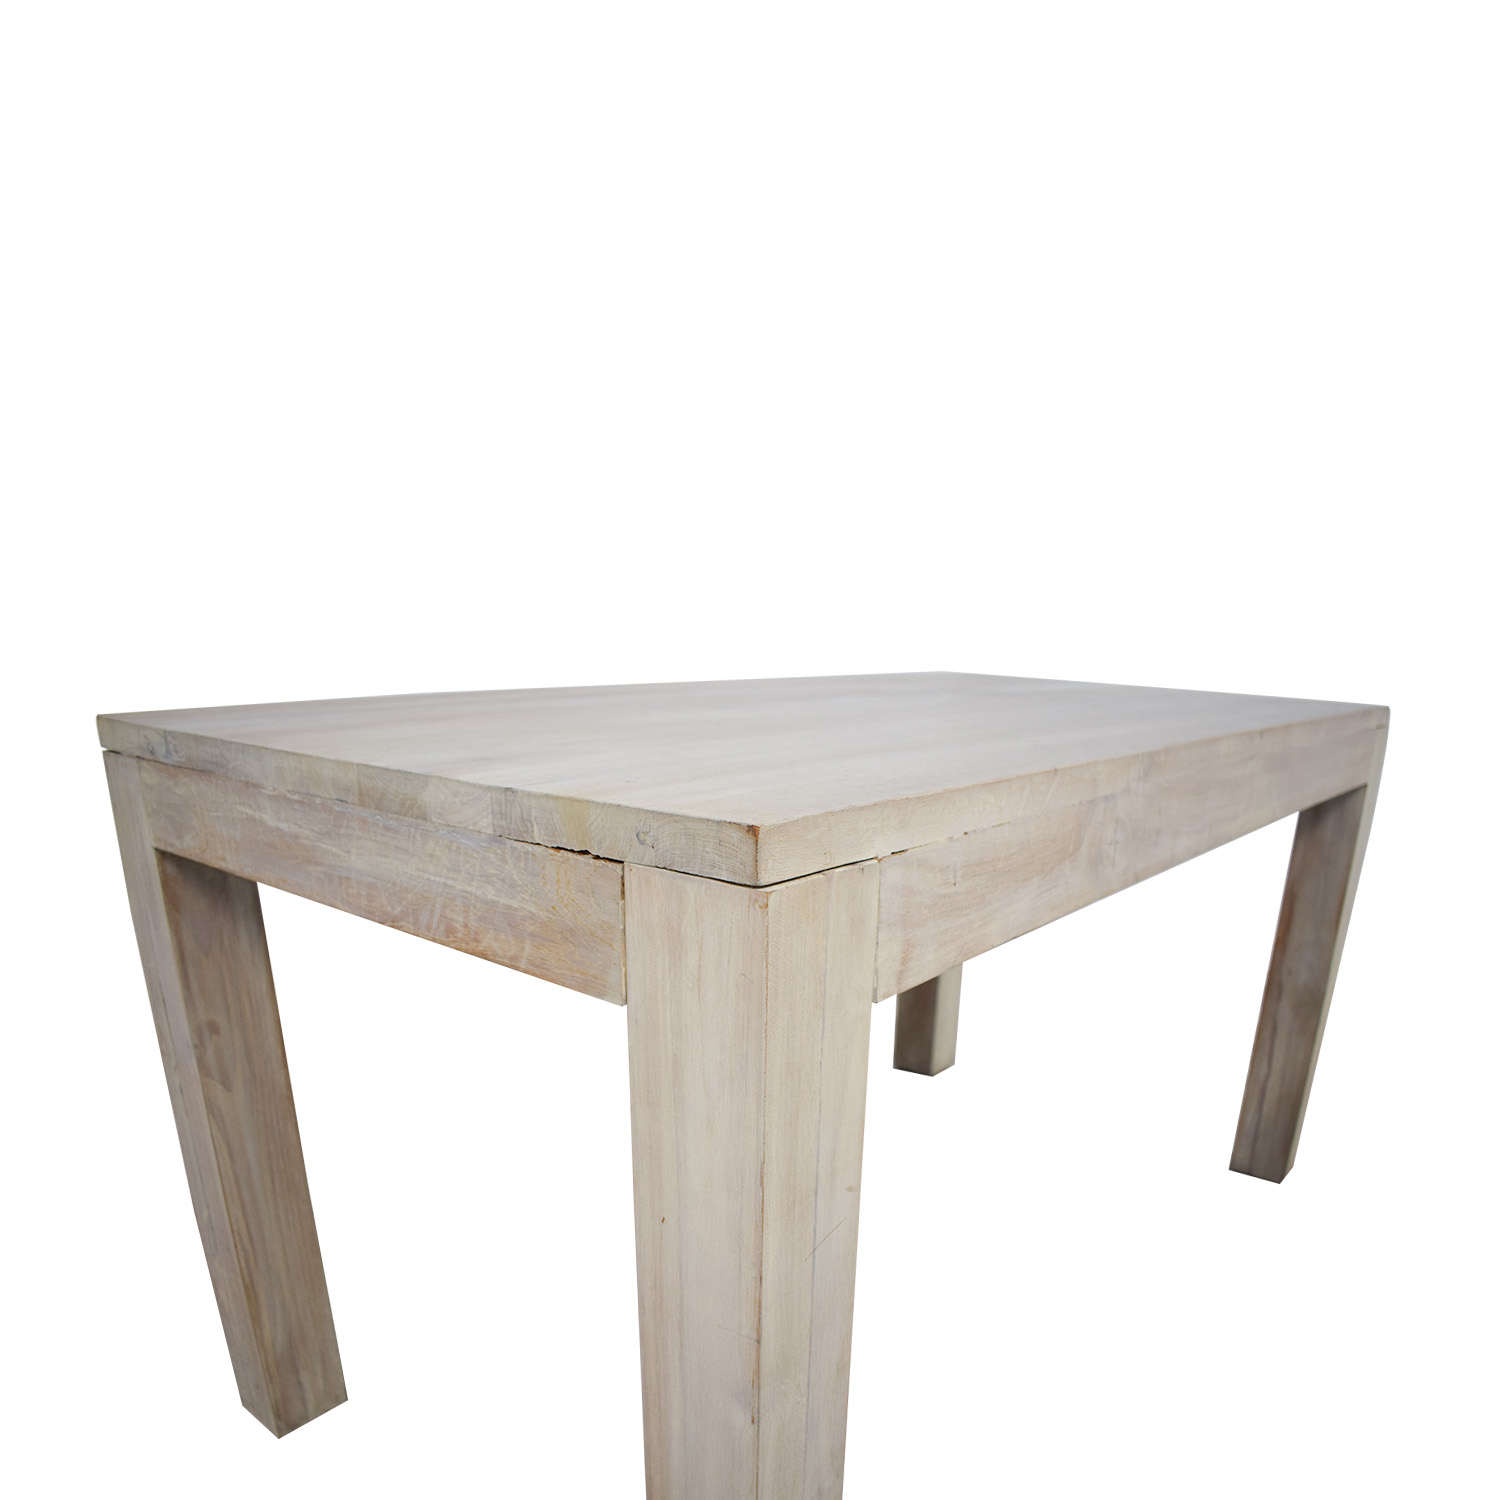 dining table and chairs hong kong antique white 68 off tree reclaimed raw oak